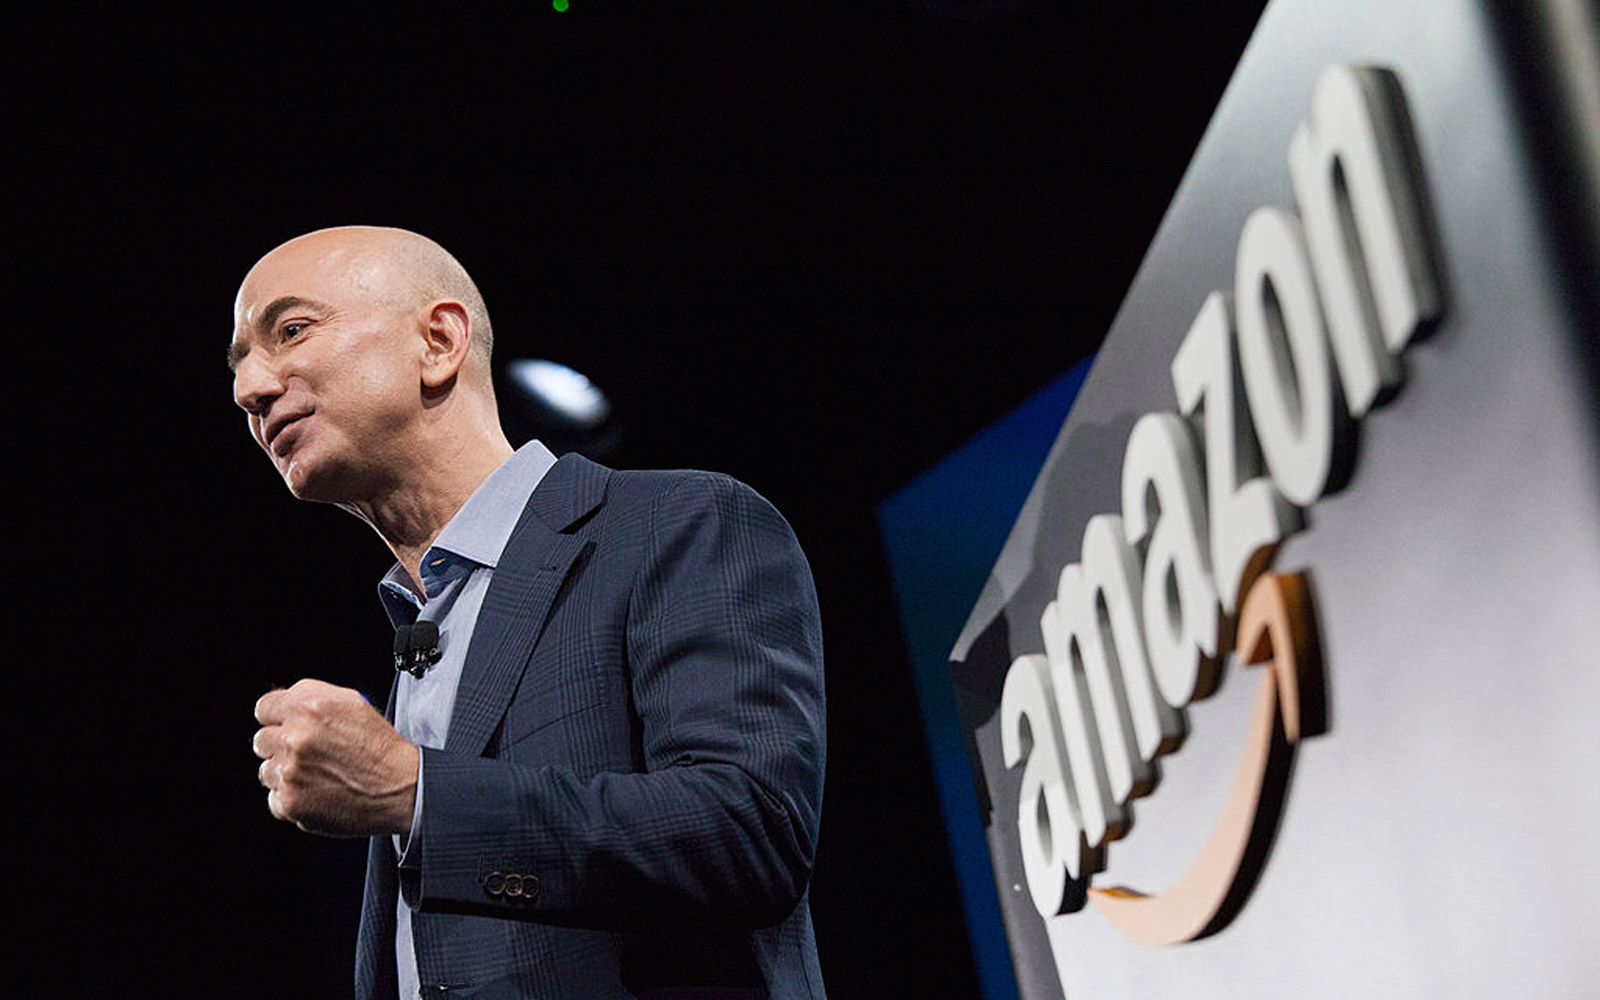 Jeff Bezos Just Became the Richest Person in the World